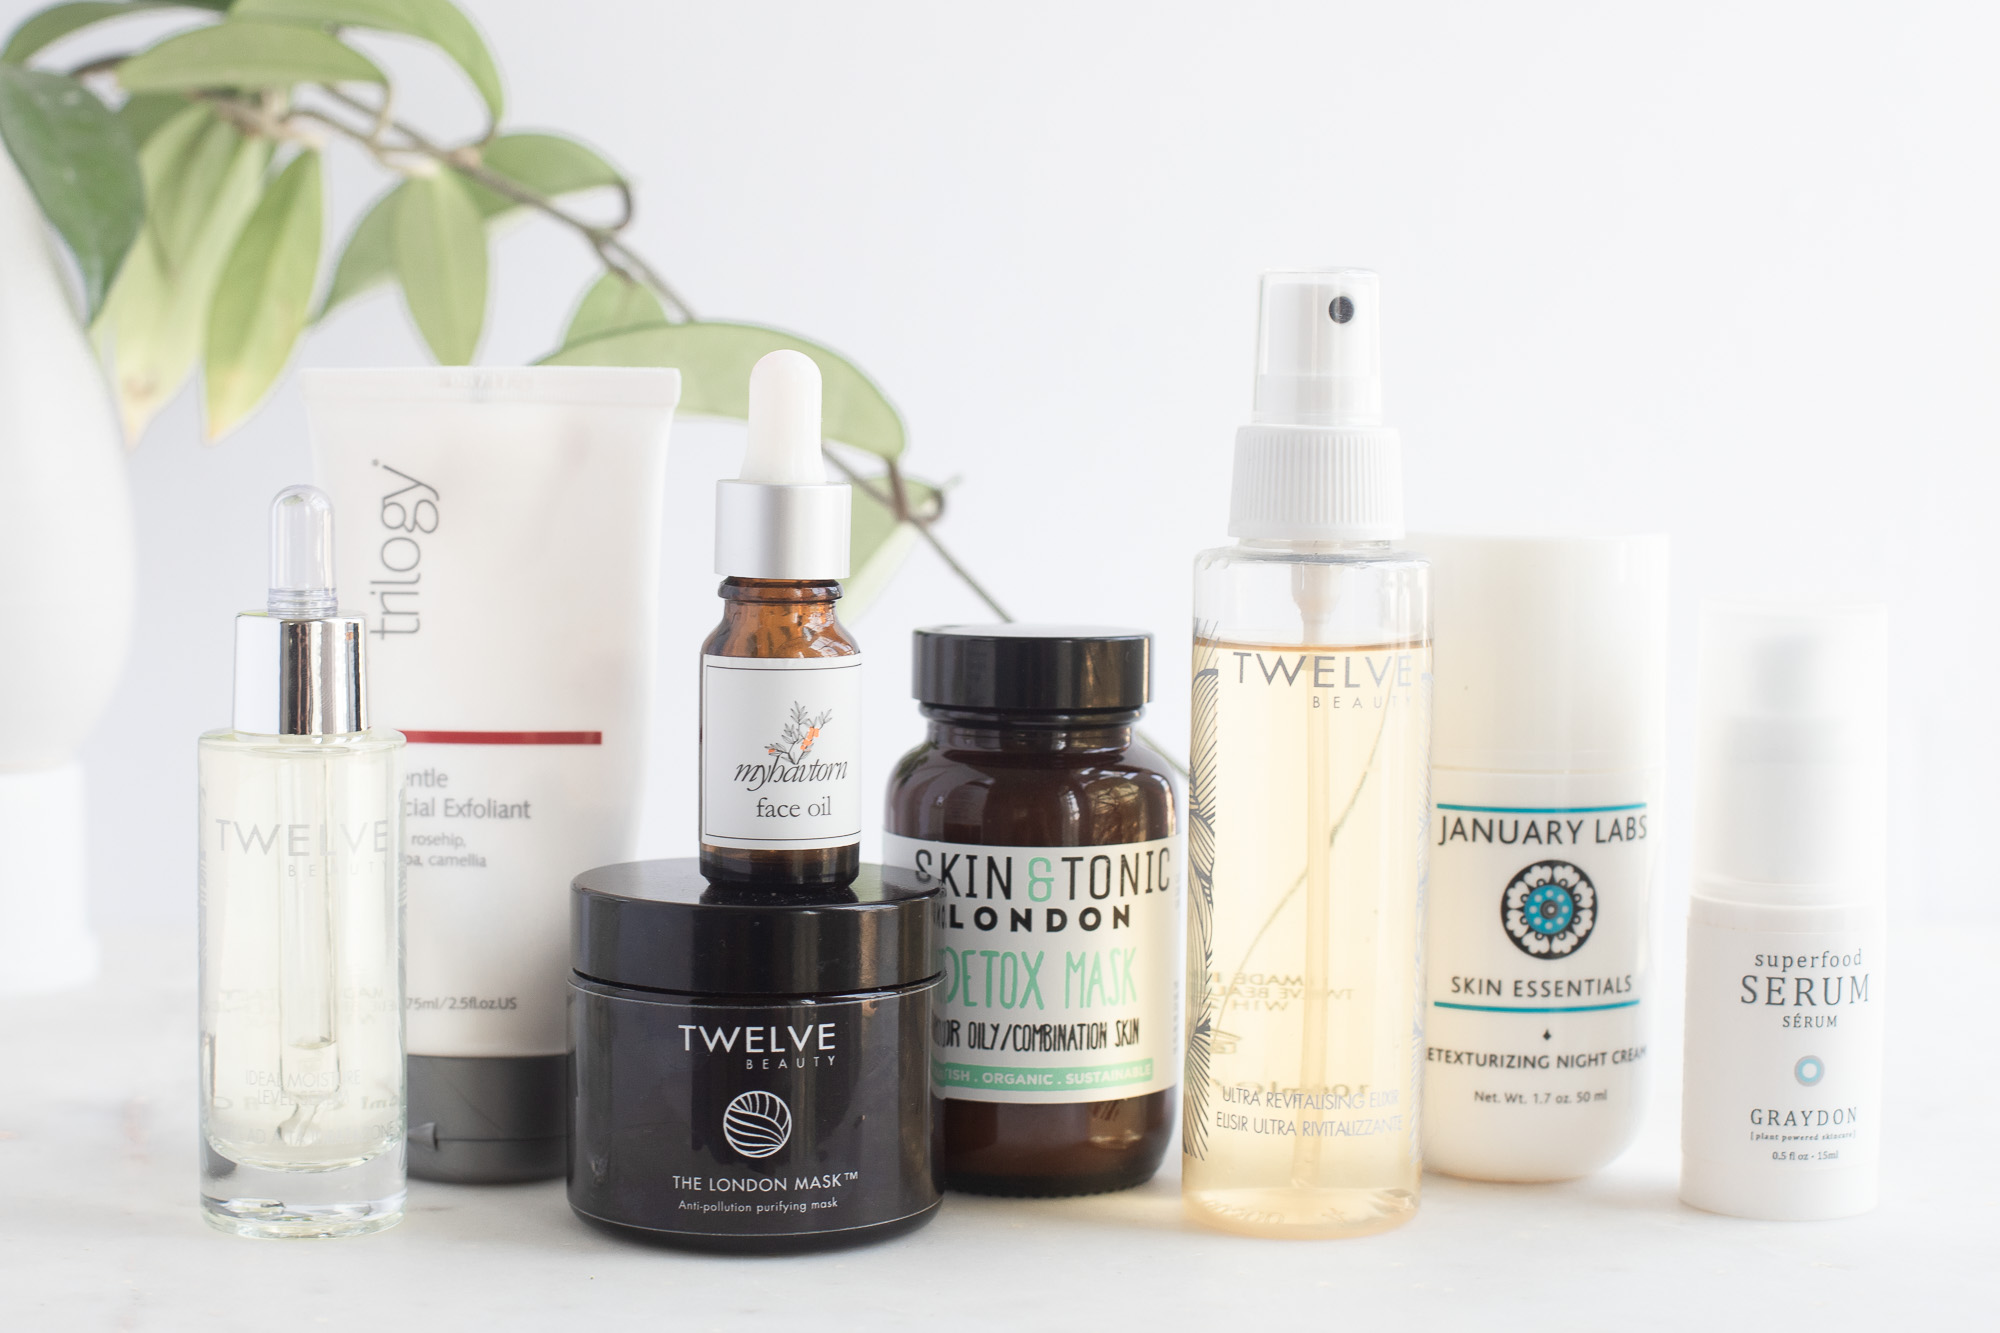 Your Best Extras - Hallmarks of oily skin are shine and enlarged pores. Blackheads or acne can happen. Acne might bring redness and inflammation. As much as you feel your skin is the complete opposite of dry, even oily skin can get dehydrated (alcohol, harsh products, plane travel). Whatever your situation is, we've got the fix.